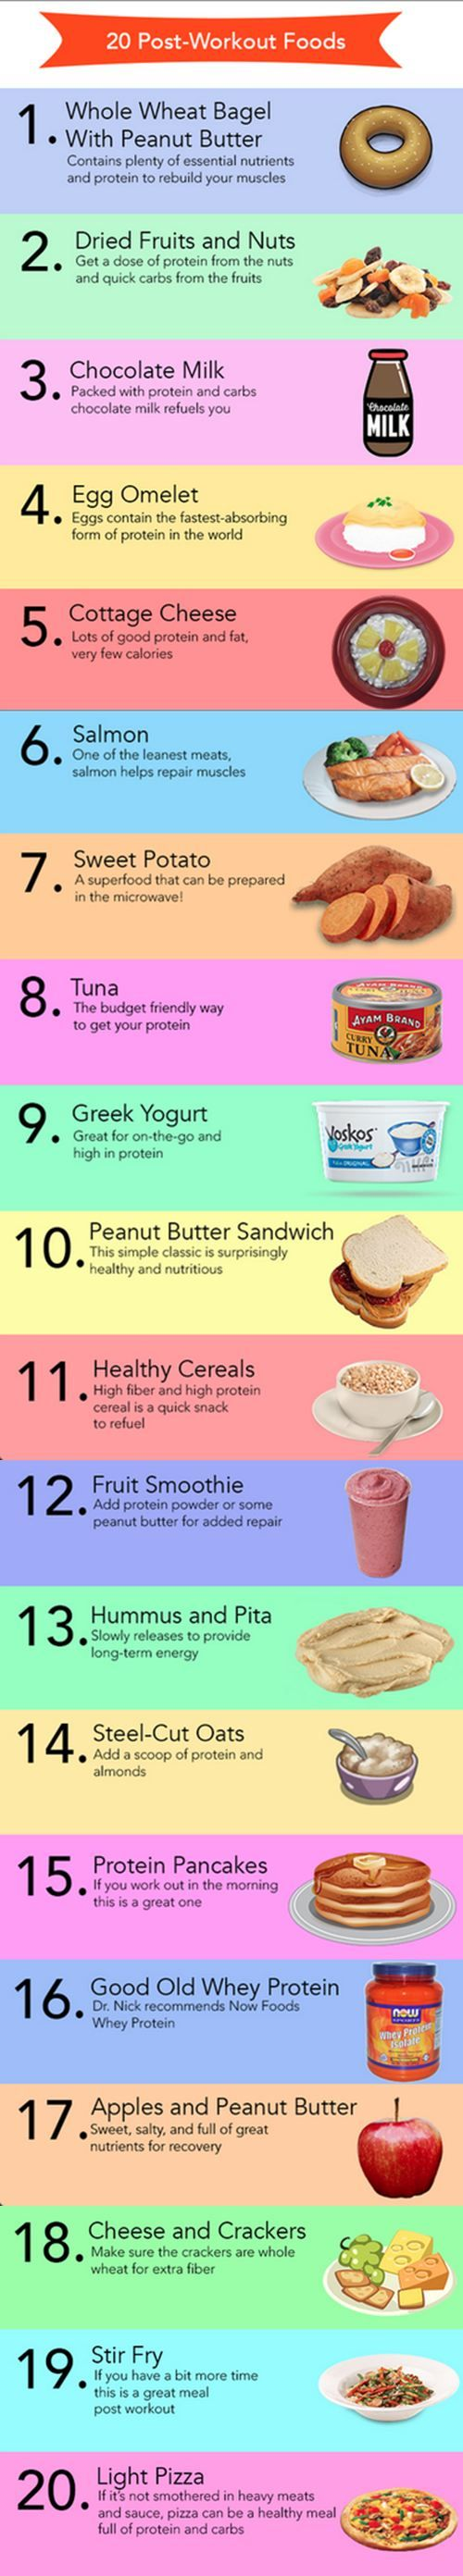 239 best eating to run fast images on pinterest healthy nutrition farewell letter from post workout forumfinder Image collections